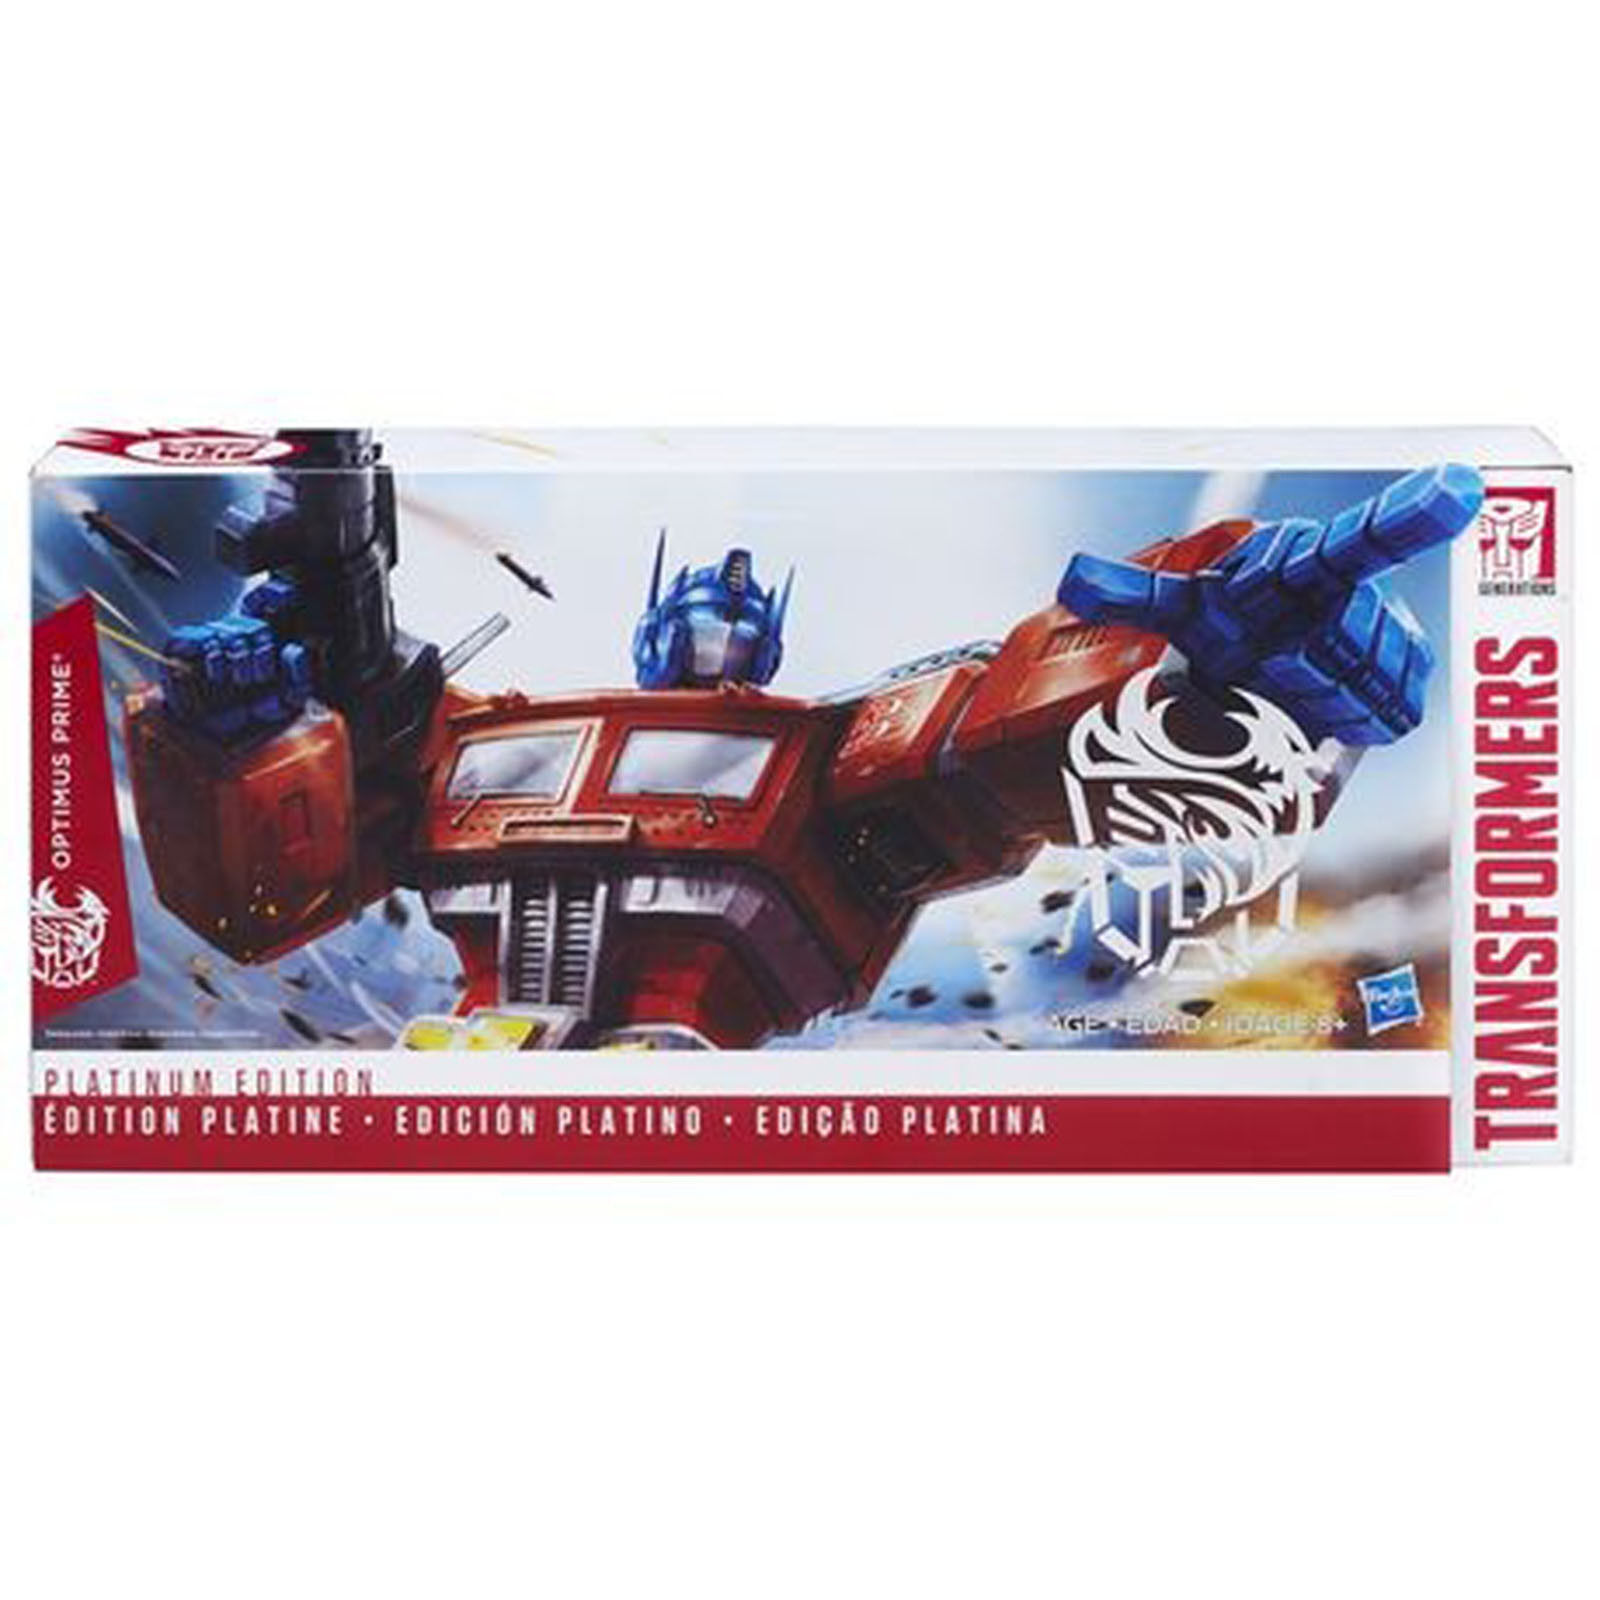 Transformers Platinum Edition Optimus Prime Year of the Rooster Action Figure